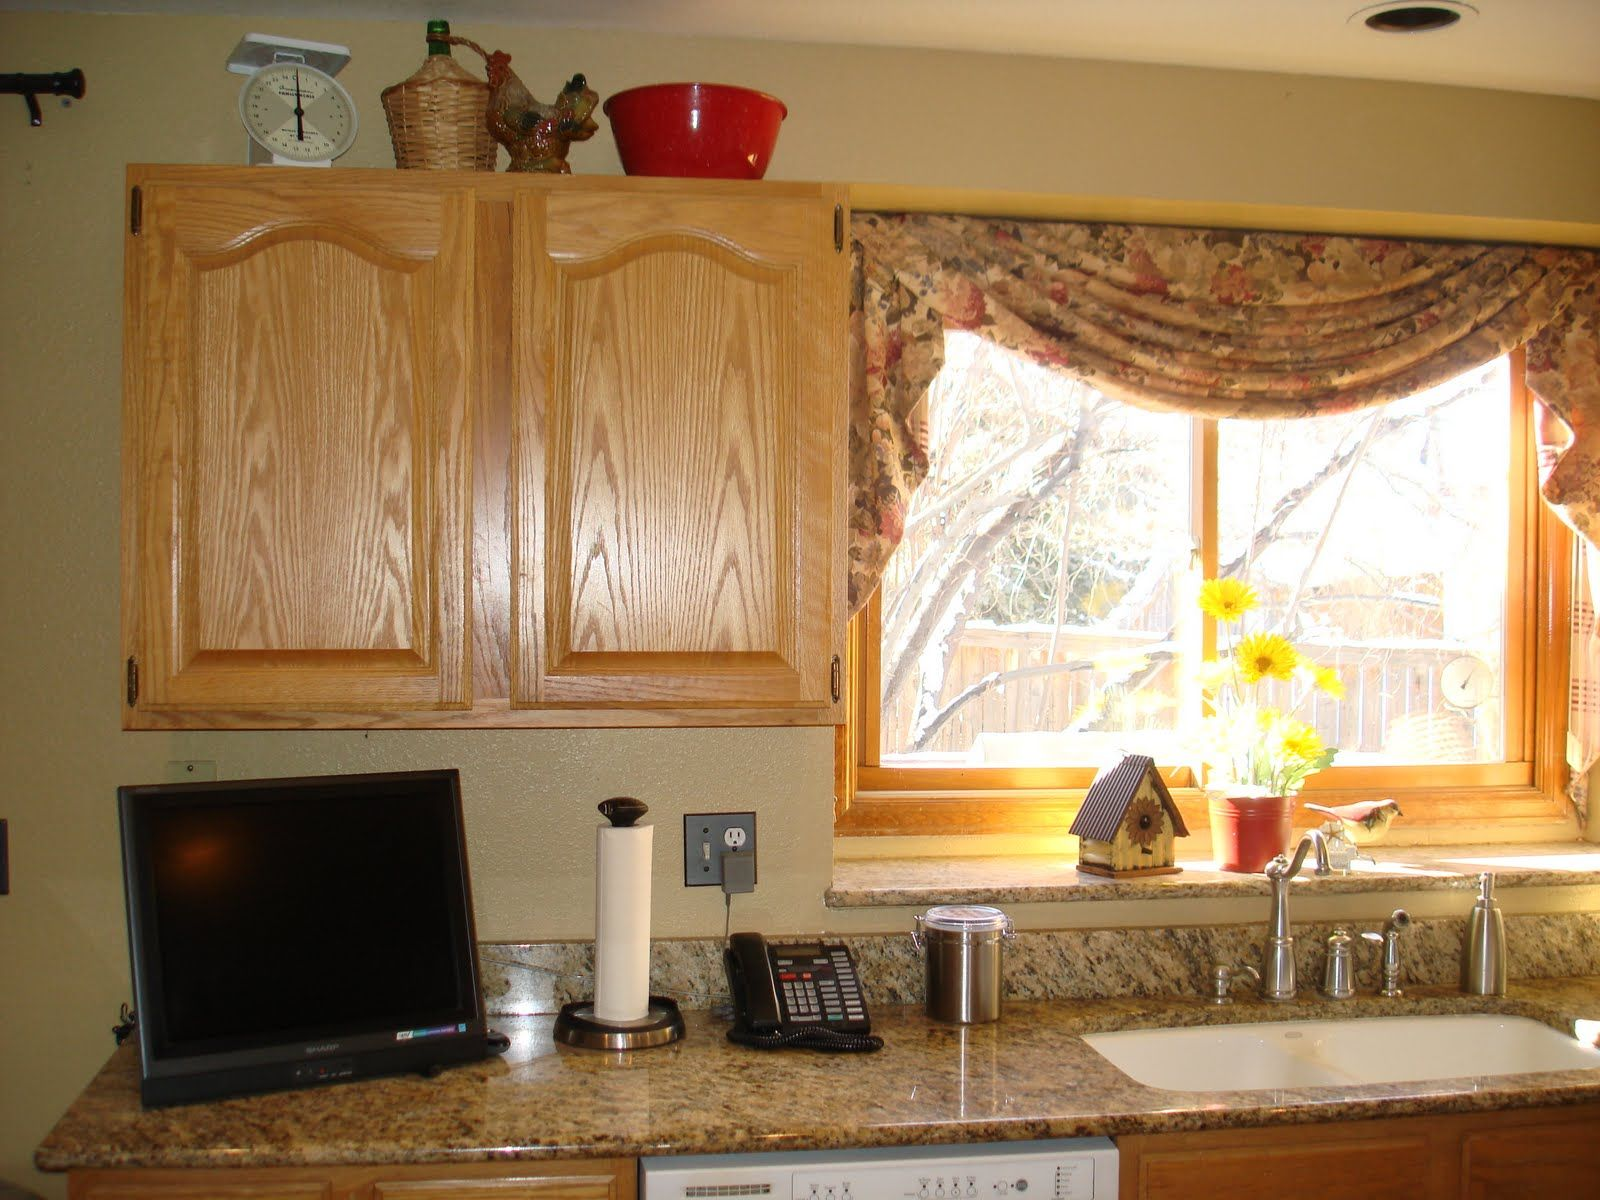 Kitchen Curtain Ideas: Kitchen Window Treatments Home Style ~ Country Kitchen  Curtains Inspiration